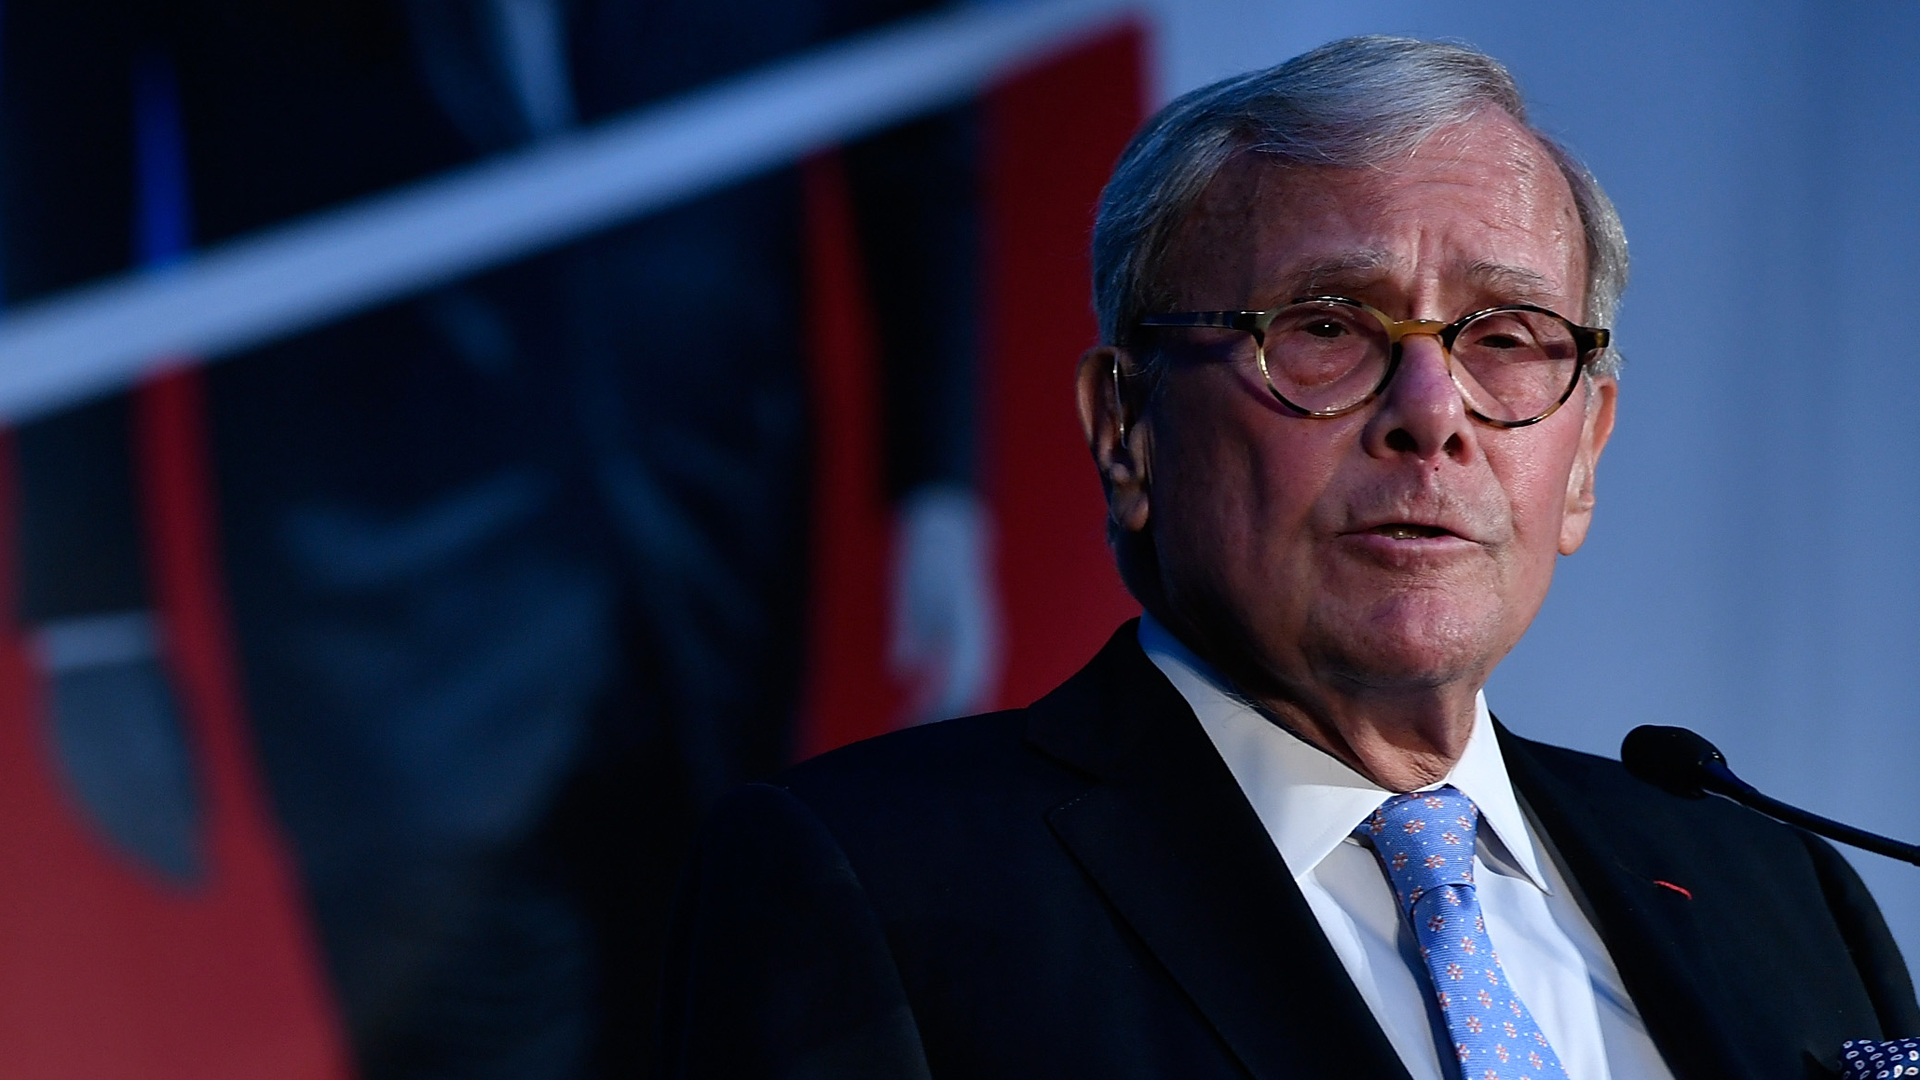 NBC anchor and author Tom Brokaw speaks at American Visionary: John F. Kennedy's Life and Times debut gala at Smithsonian American Art Museum on May 2, 2017, in Washington, D.C. (Credit: Larry French/Getty Images for WS Productions)